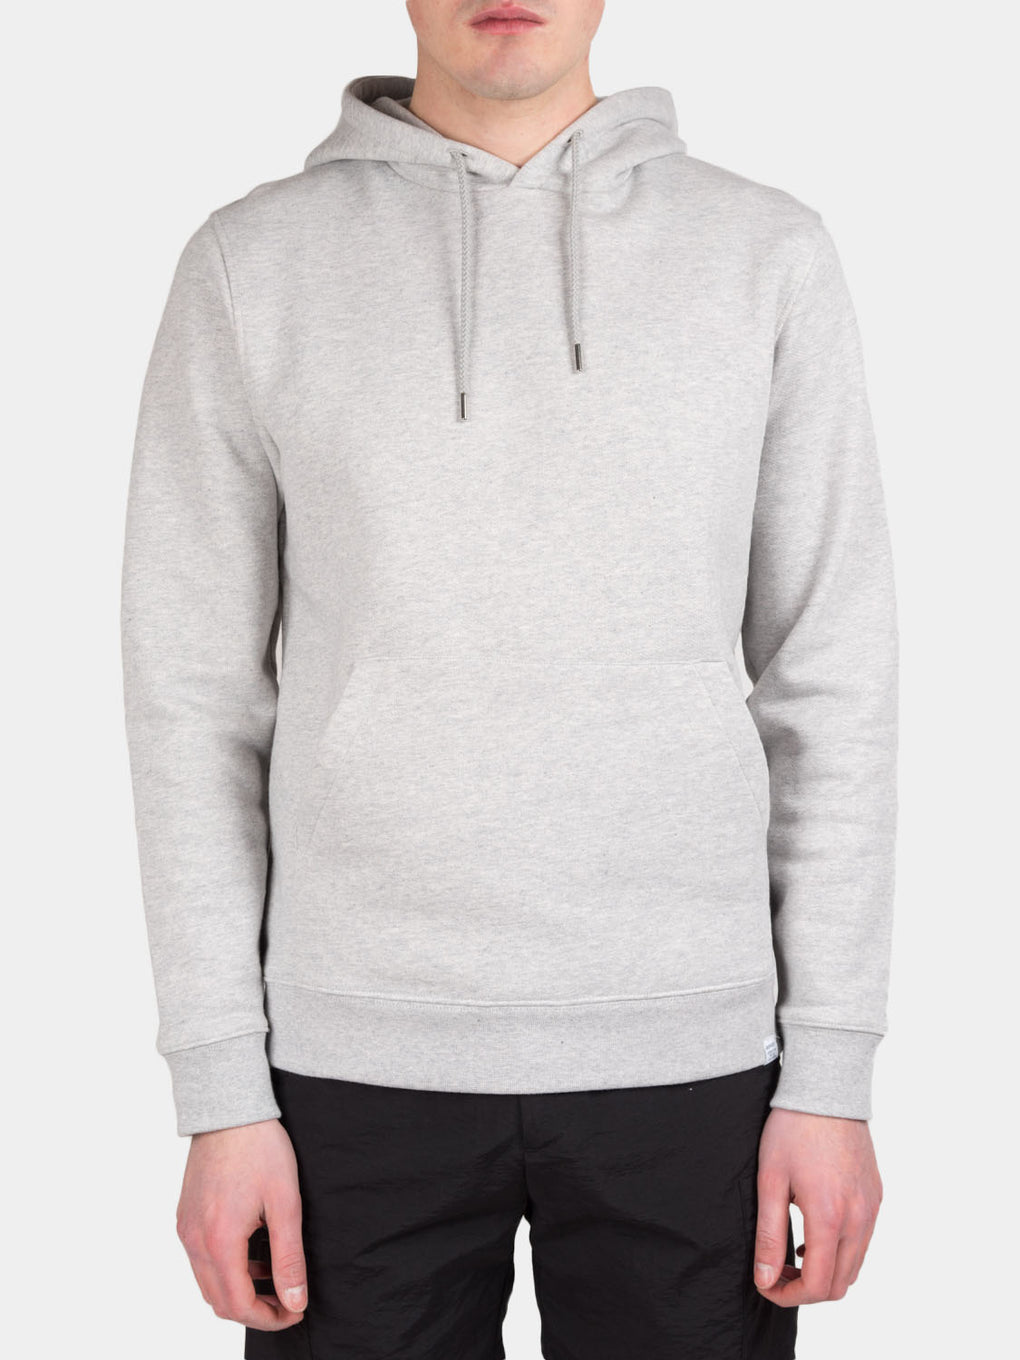 vagn classic hoodie, light grey melange, norse projects, on model front view